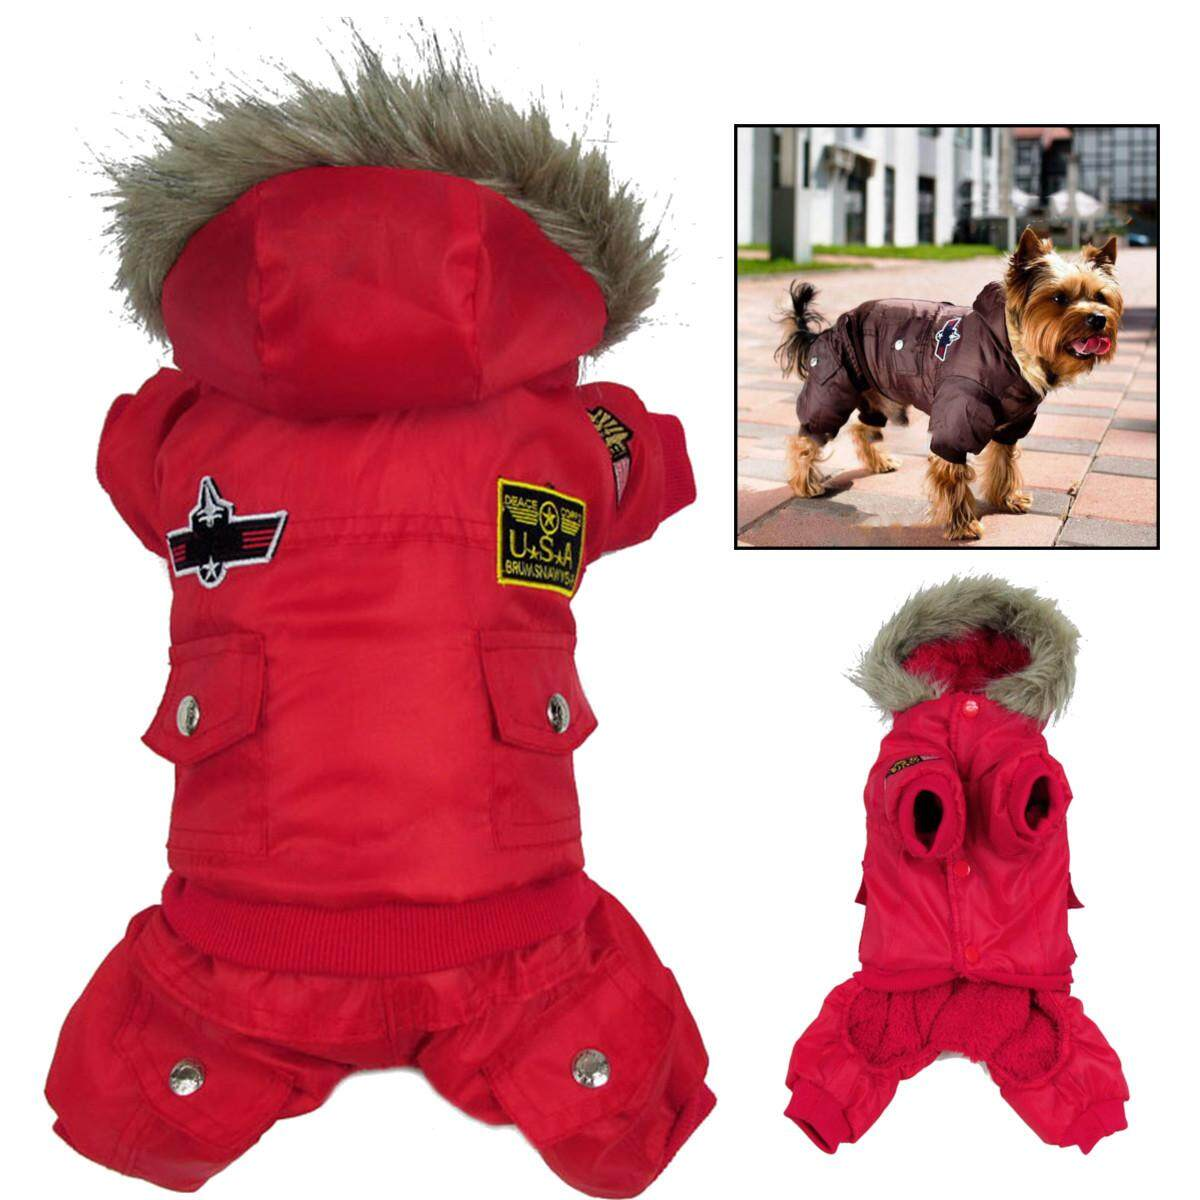 Waterproof Warm Winter Dog Coat Jacket Usa Air Force Pet Dog Clothes Xs-Xl  S By Moonbeam.